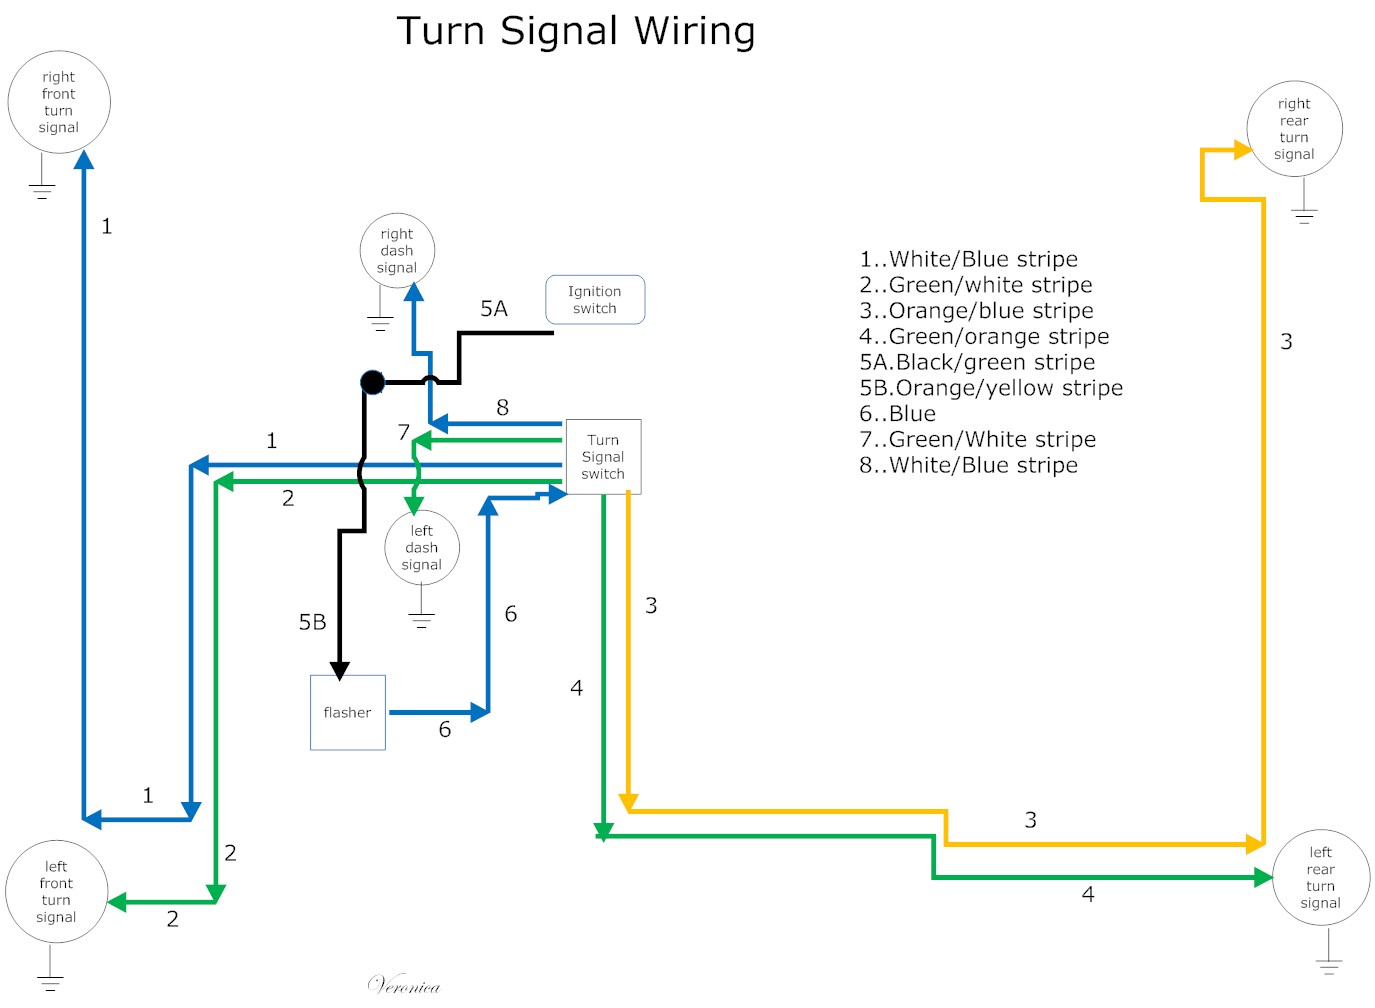 Exterior Light Turn Signals And Horns Wiring Diagrams Of 1966 - Jeep Tj  Fuel Filter Location for Wiring Diagram Schematics | Turn Signal Wiring Diagram For 1966 Mustang |  | Wiring Diagram Schematics